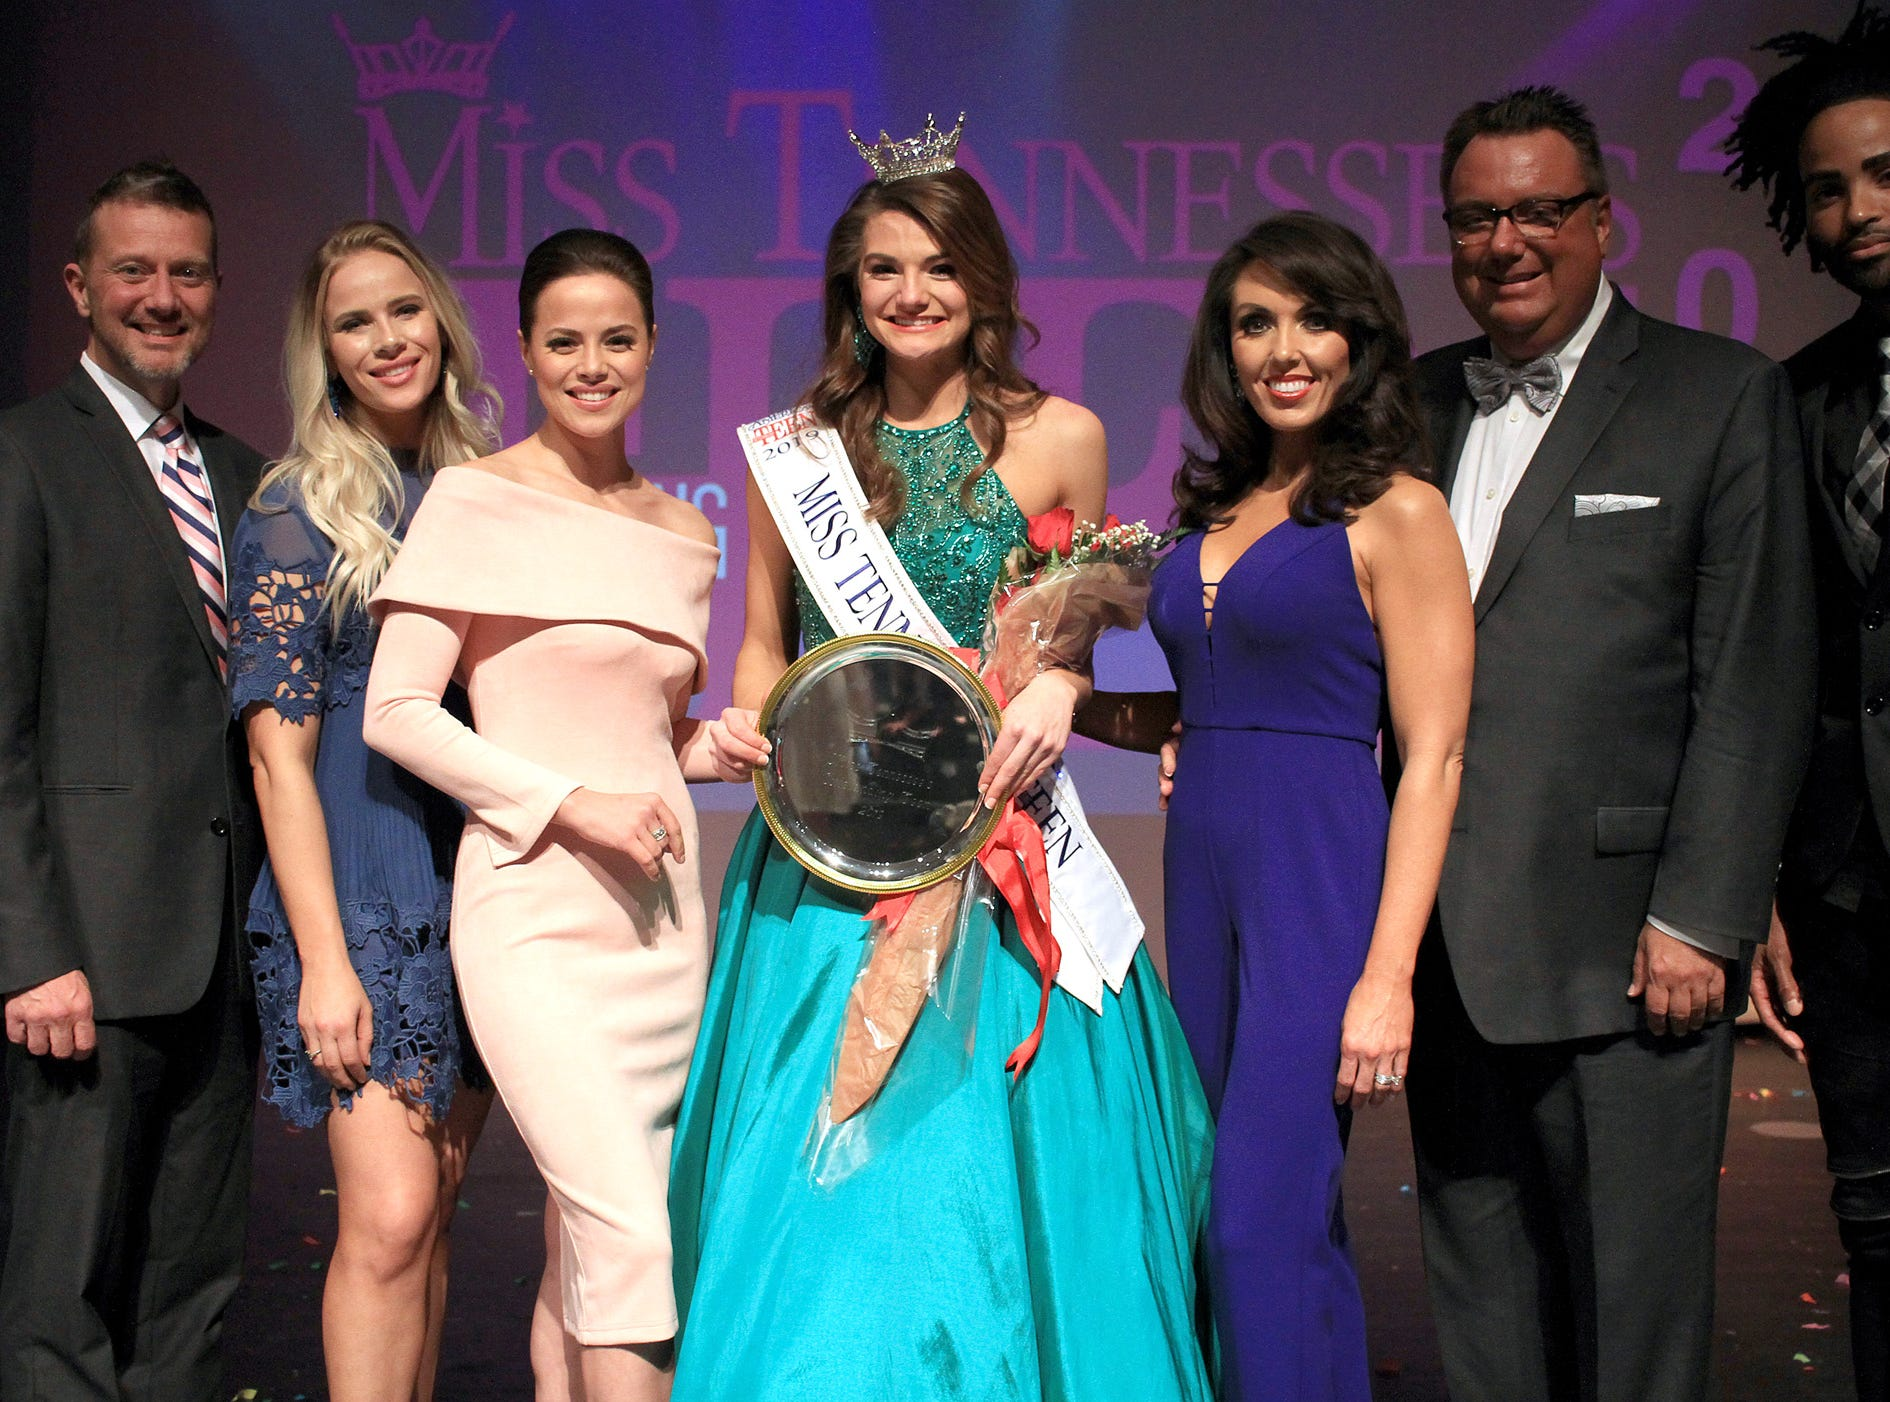 Miss Tennessee's Outstanding 2019 Teen Taylor Parsons poses with the Judges in Gallatin, TN on Saturday, March 30, 2019.